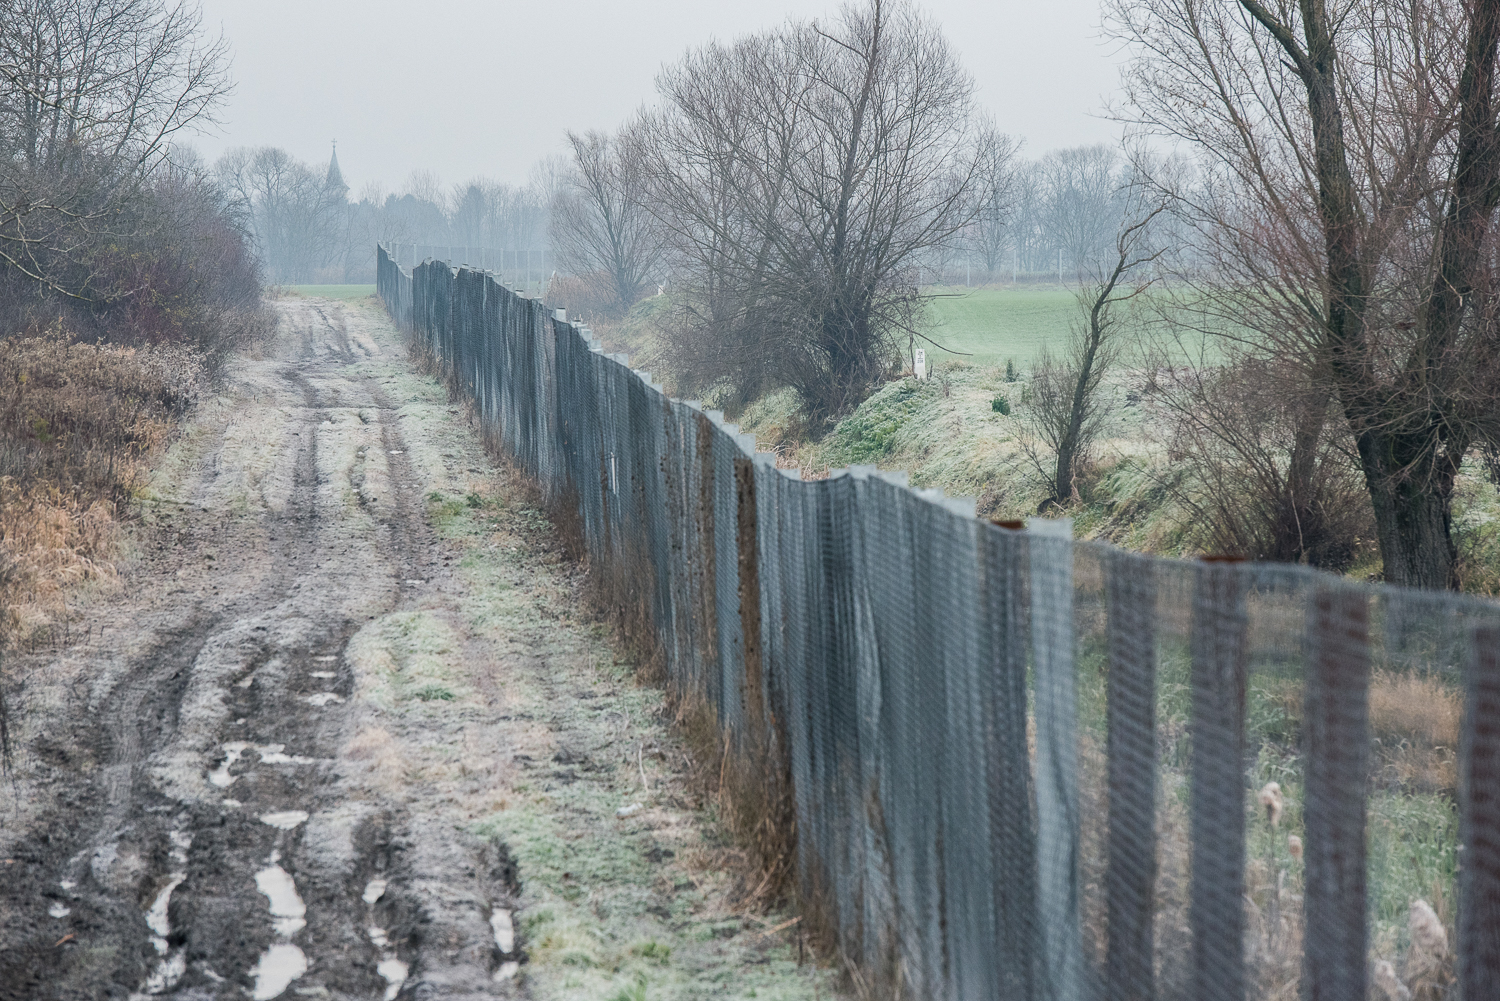 The border barrier which separates Hungary and Croatia near Illocska, Hungary 2 December 2017. The fence was constructed in the middle of the European migration crisis in 2015, with the aim to ensure border security by preventing immigrants from entering the country and the European Union illegally.